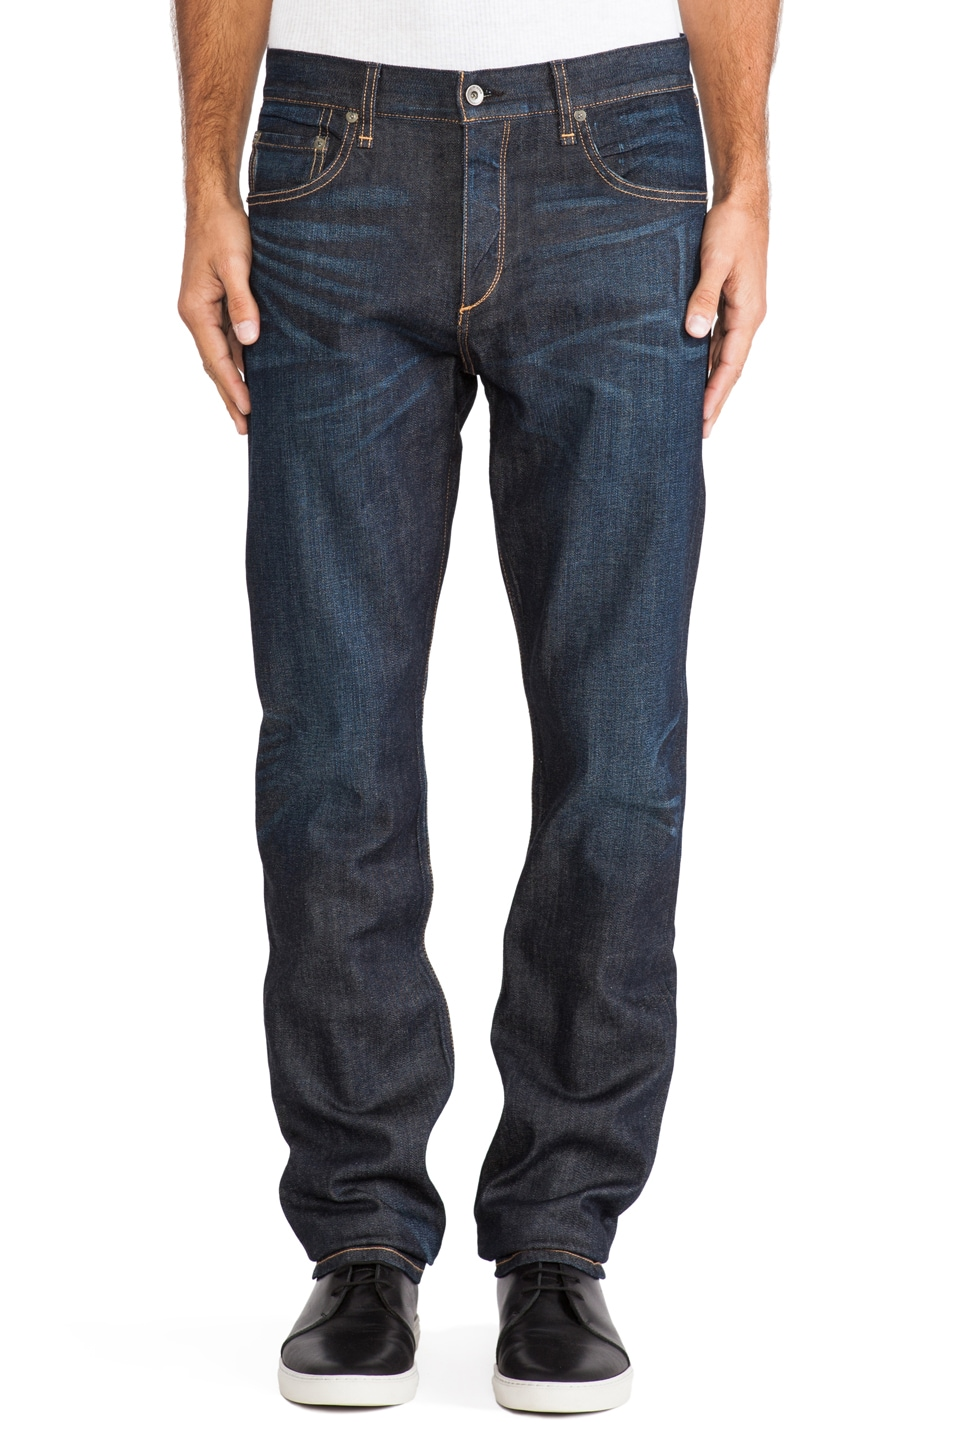 Rag & Bone Fit 3 Slim Jeans in Dark Vintage